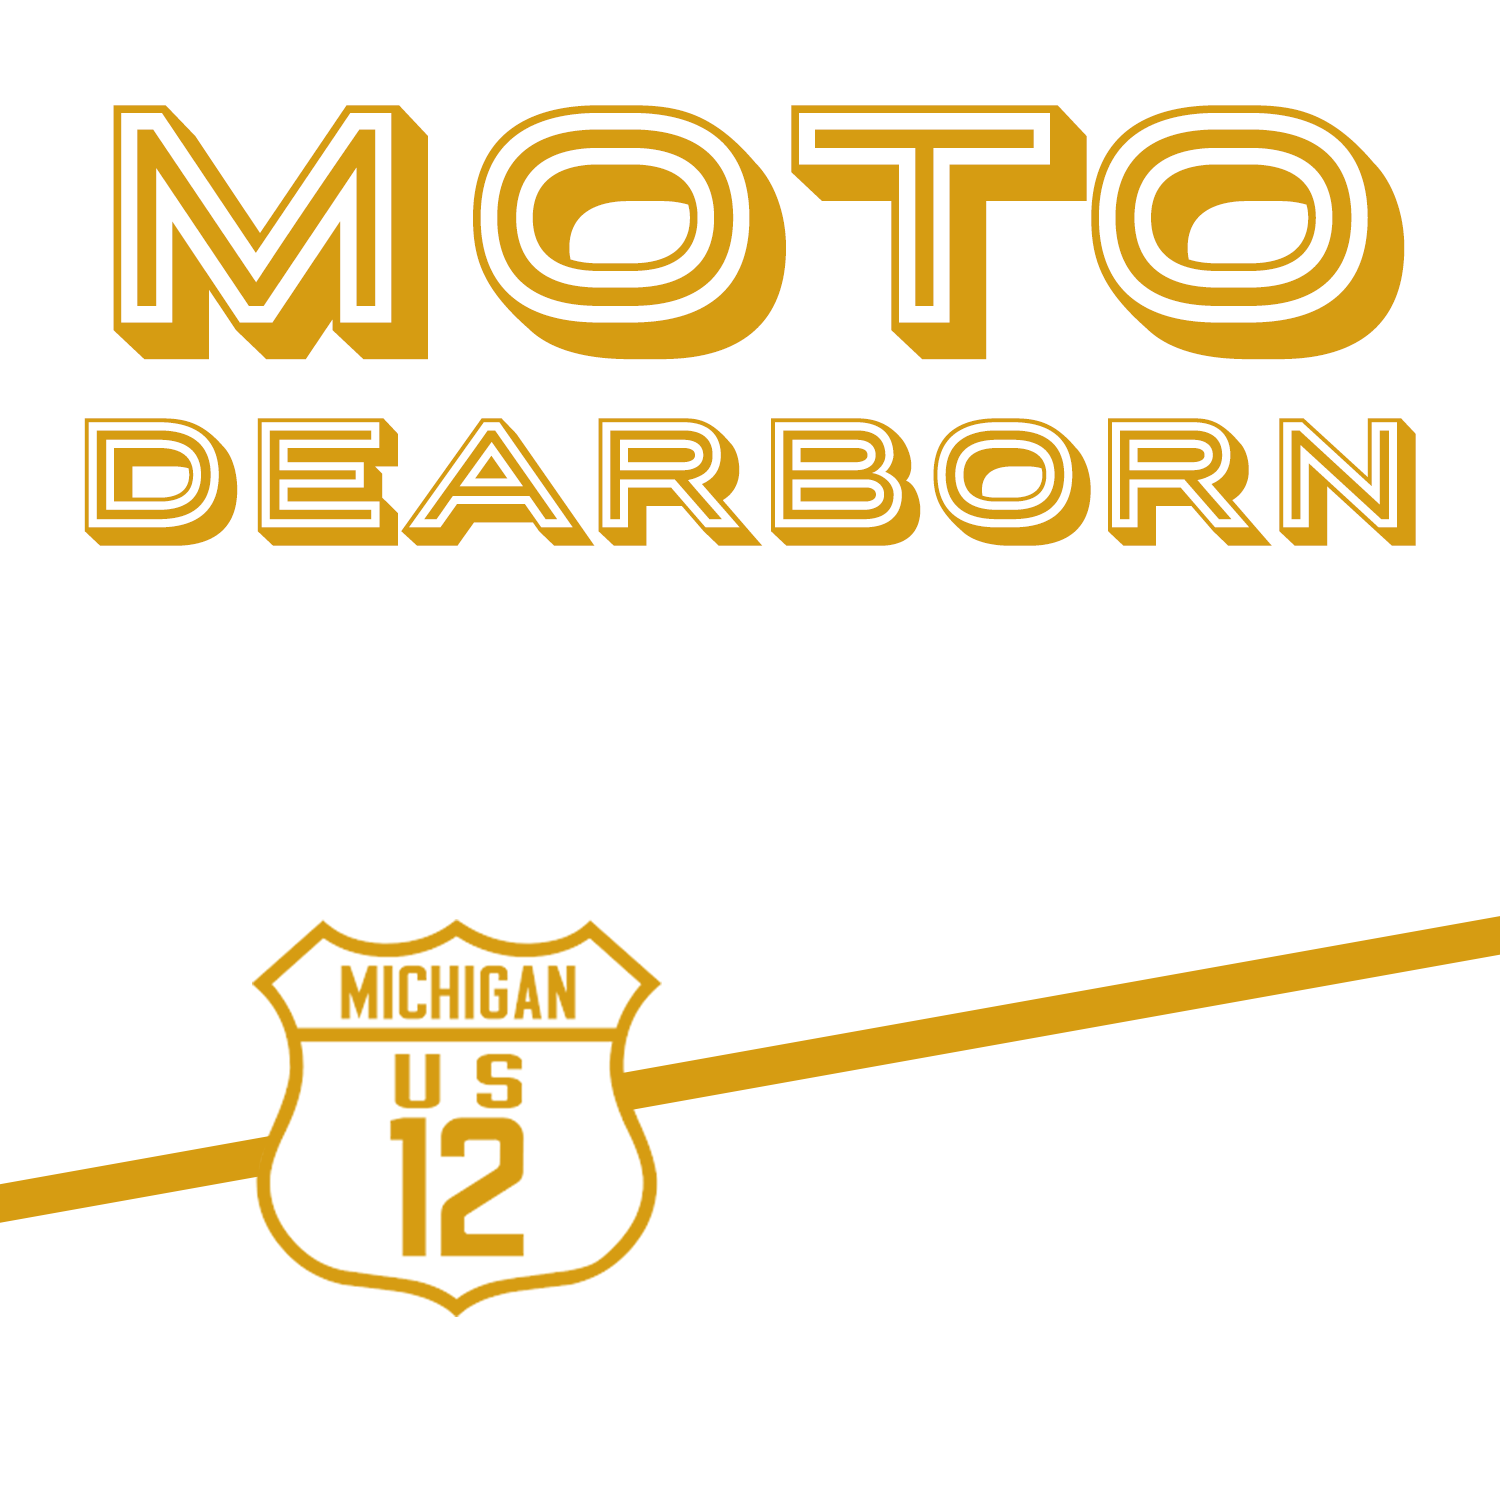 moto dearborn chapter.png